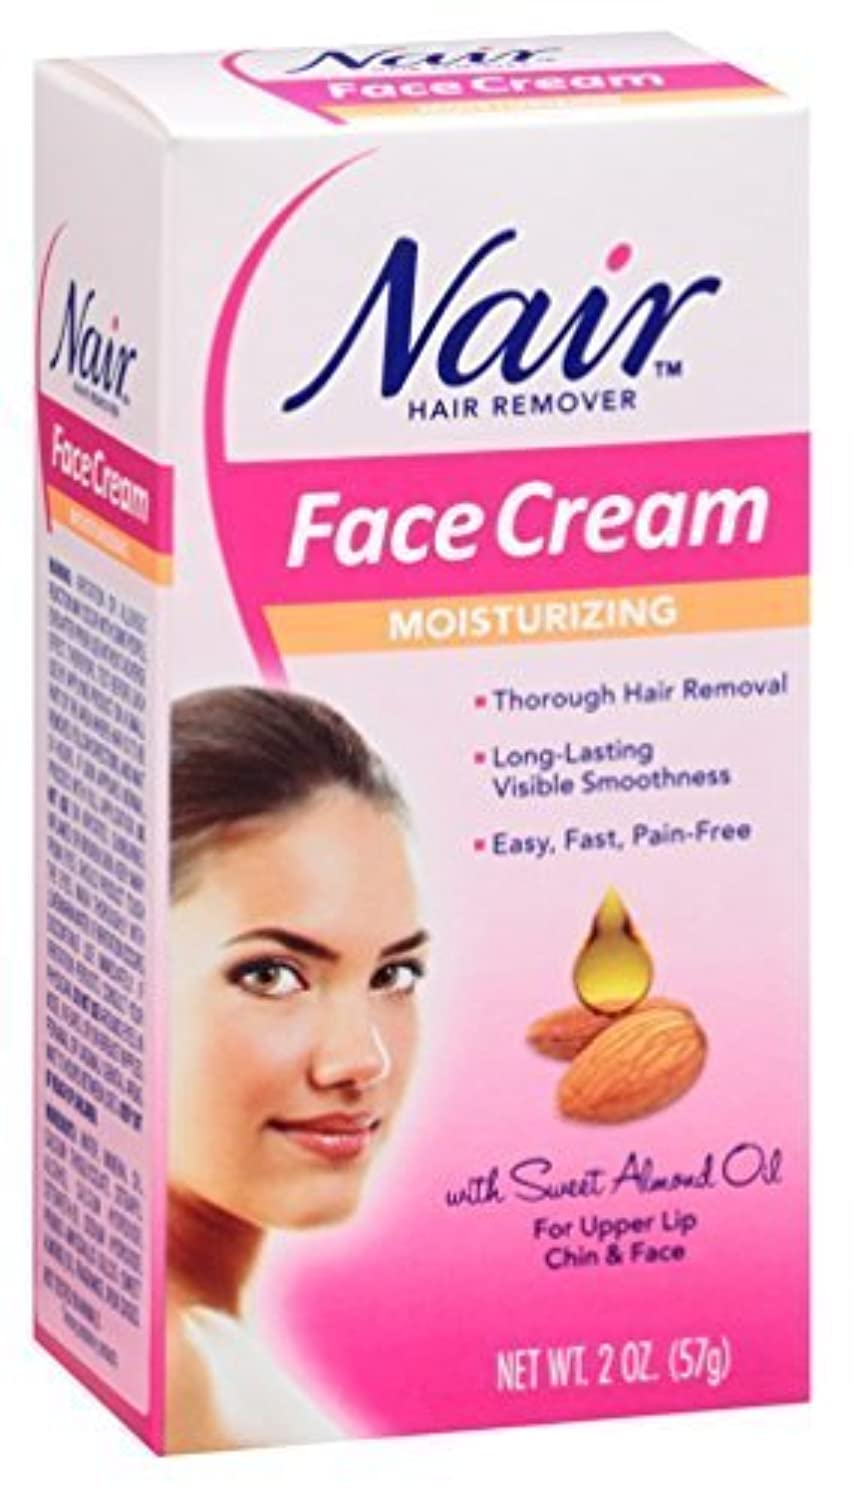 開梱ストローむき出しNair Moisturizing Face Cream Hair Remover 2 oz by Nair [並行輸入品]